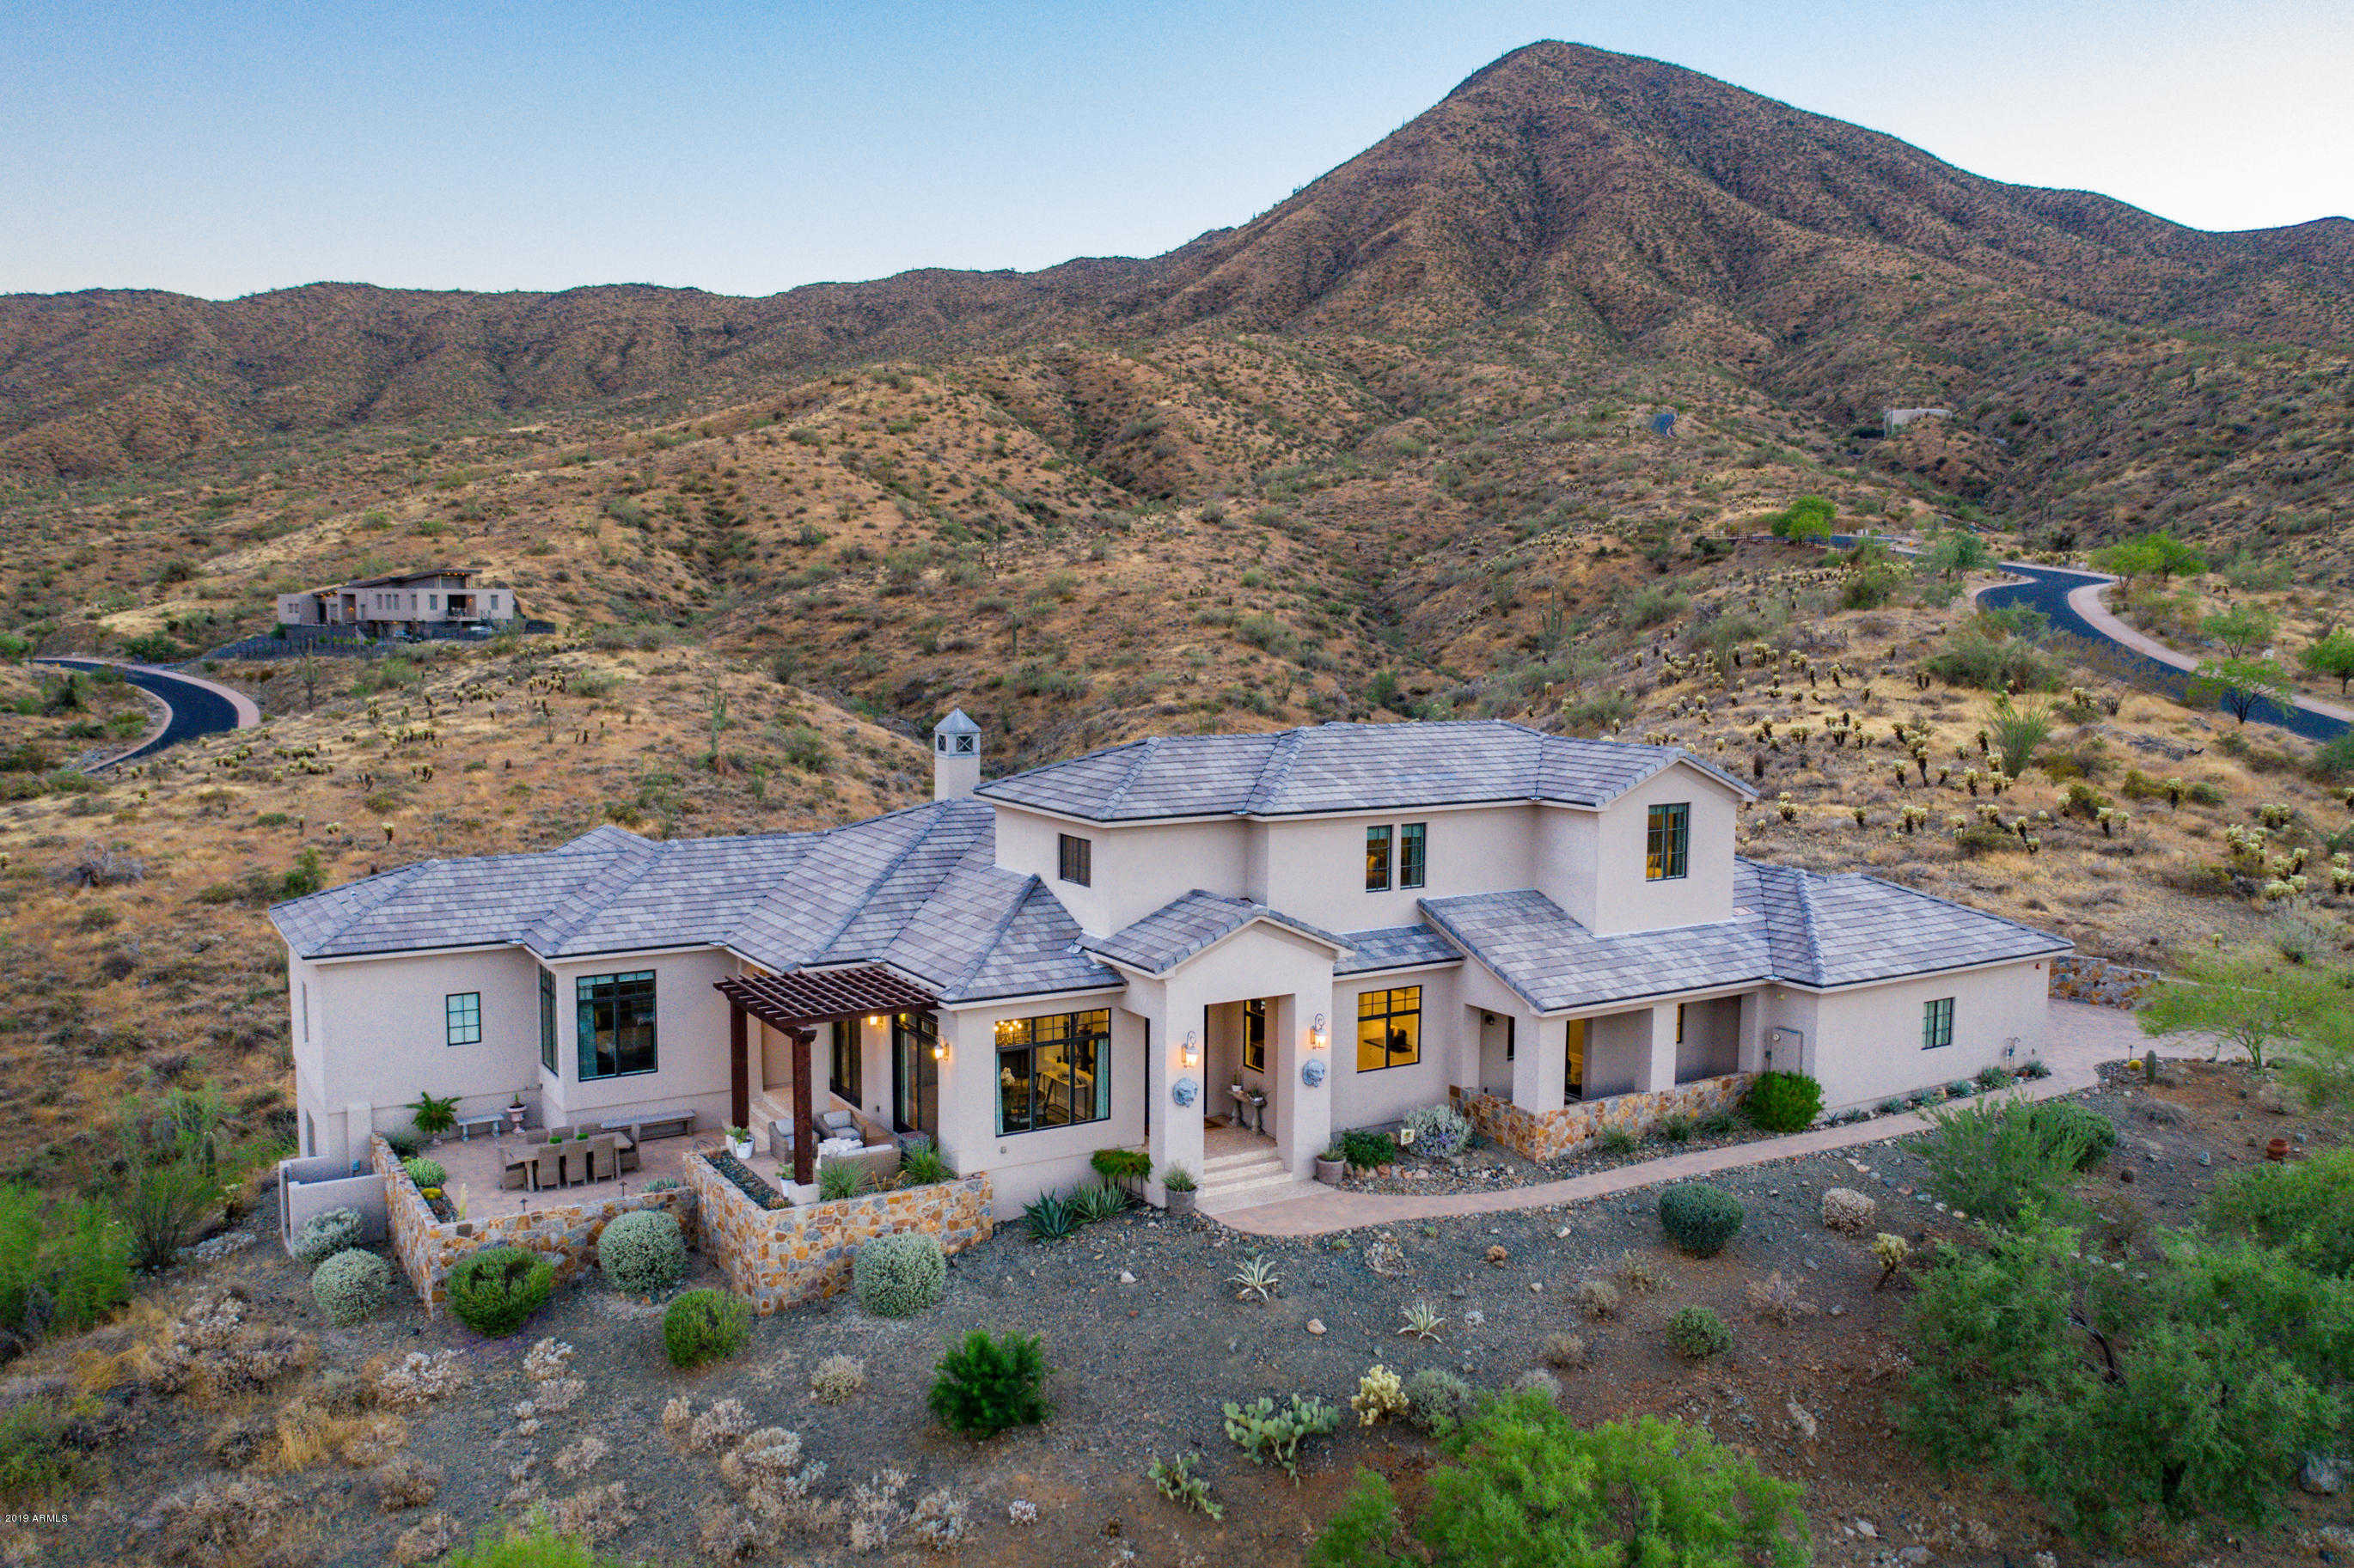 $1,695,000 - 6Br/6Ba - Home for Sale in Eagles Nest, Fountain Hills